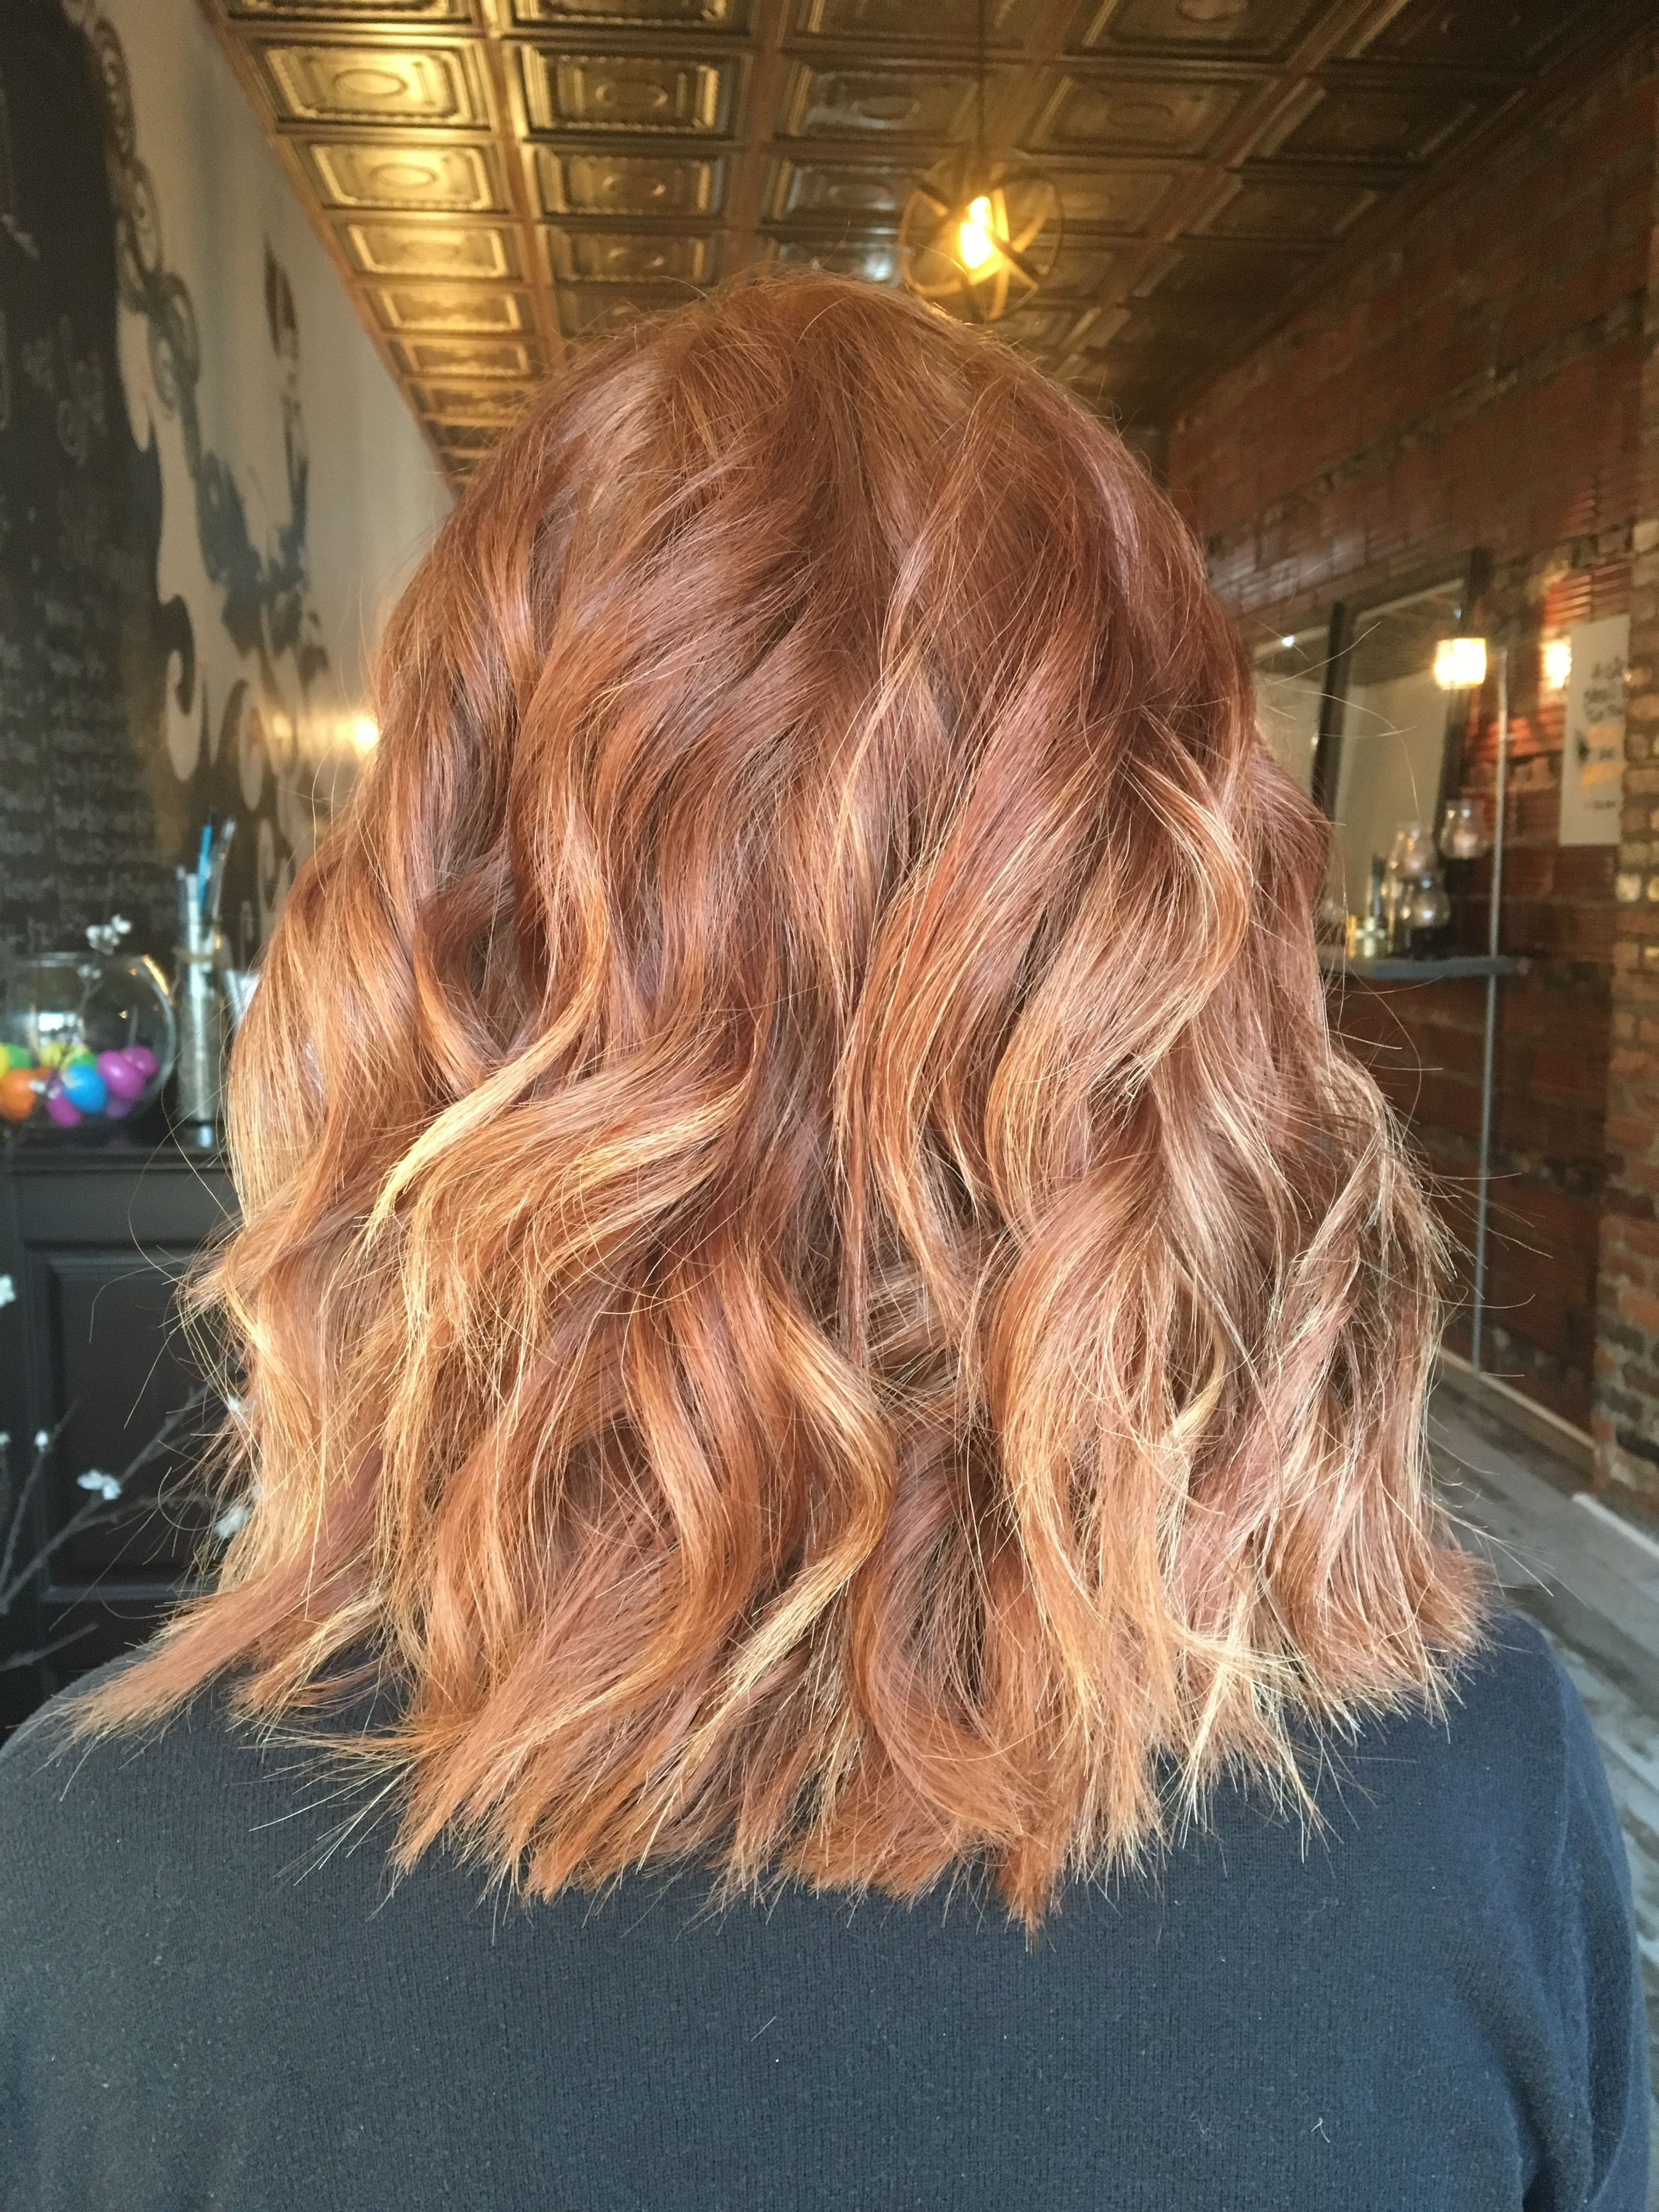 Natural Red Hair With Subtle Blonde Bayalage Highlights Bayalage Blonde Hair Highligh In 2020 Red Blonde Hair Red Balayage Hair Natural Red Hair